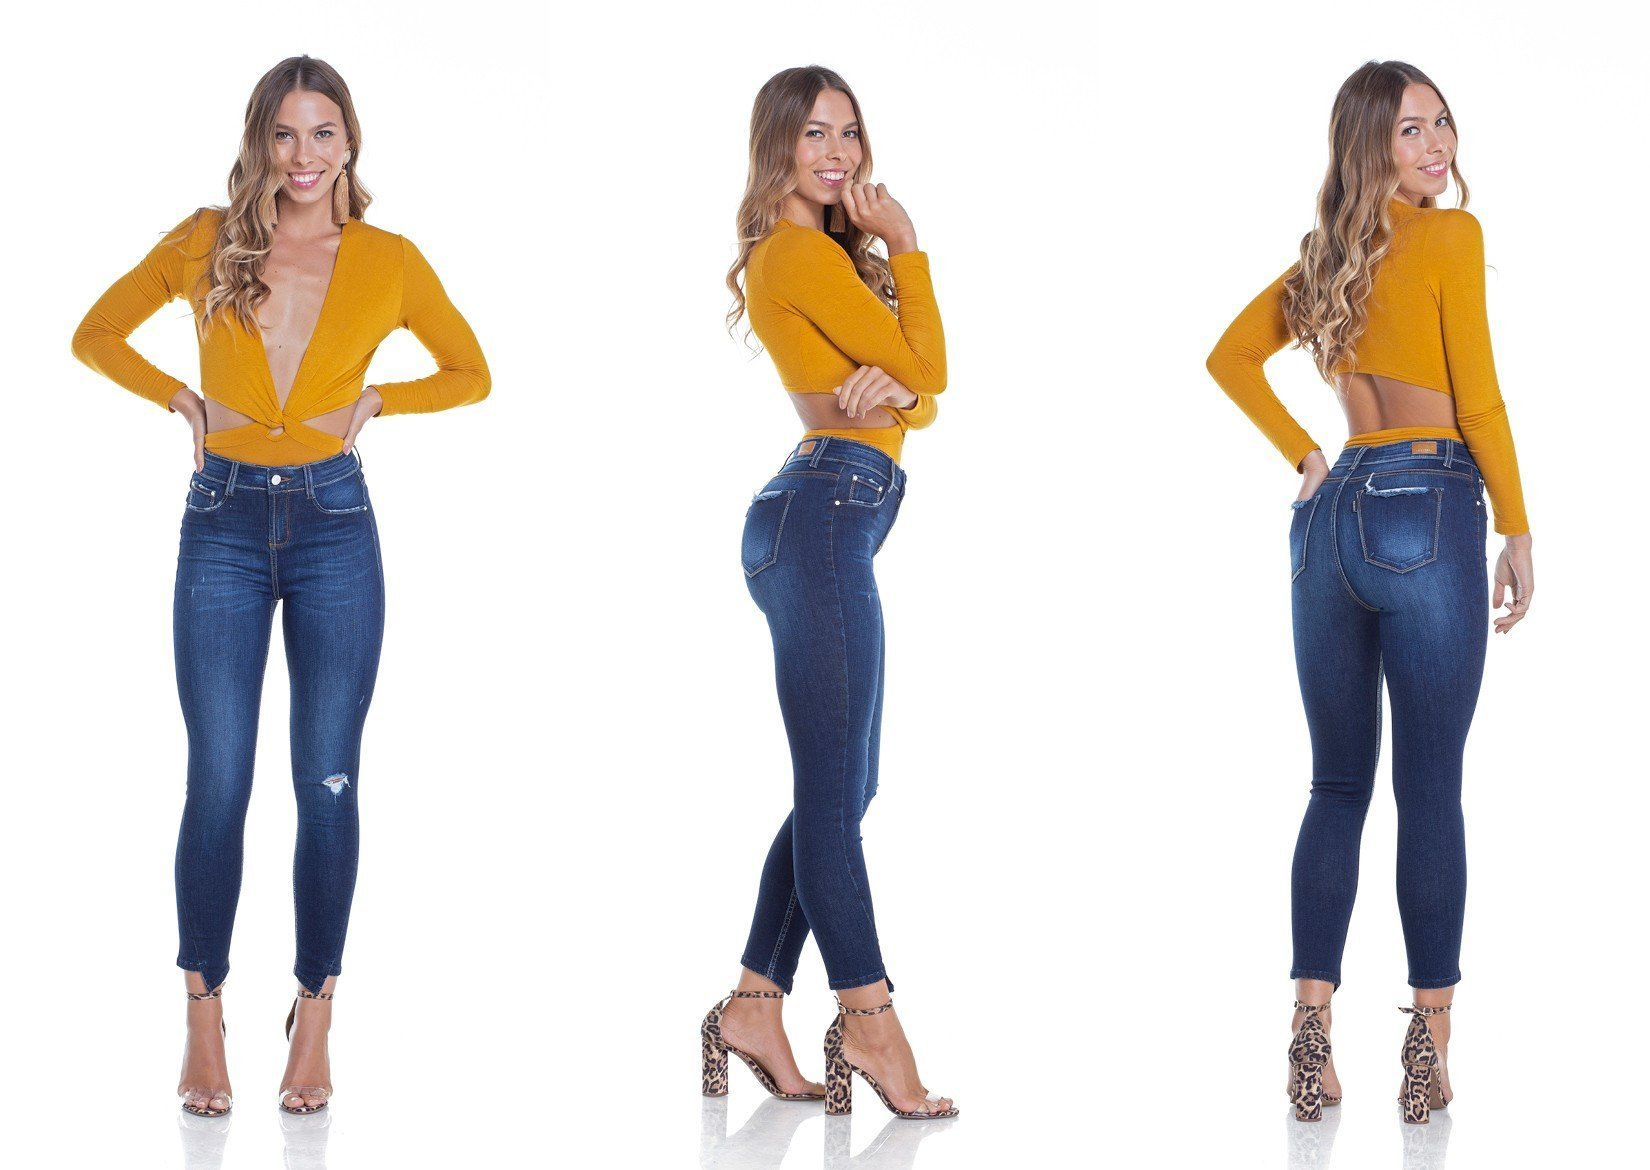 dz2912 calca jeans skinny media cropped ponta na barra tripla denim zero